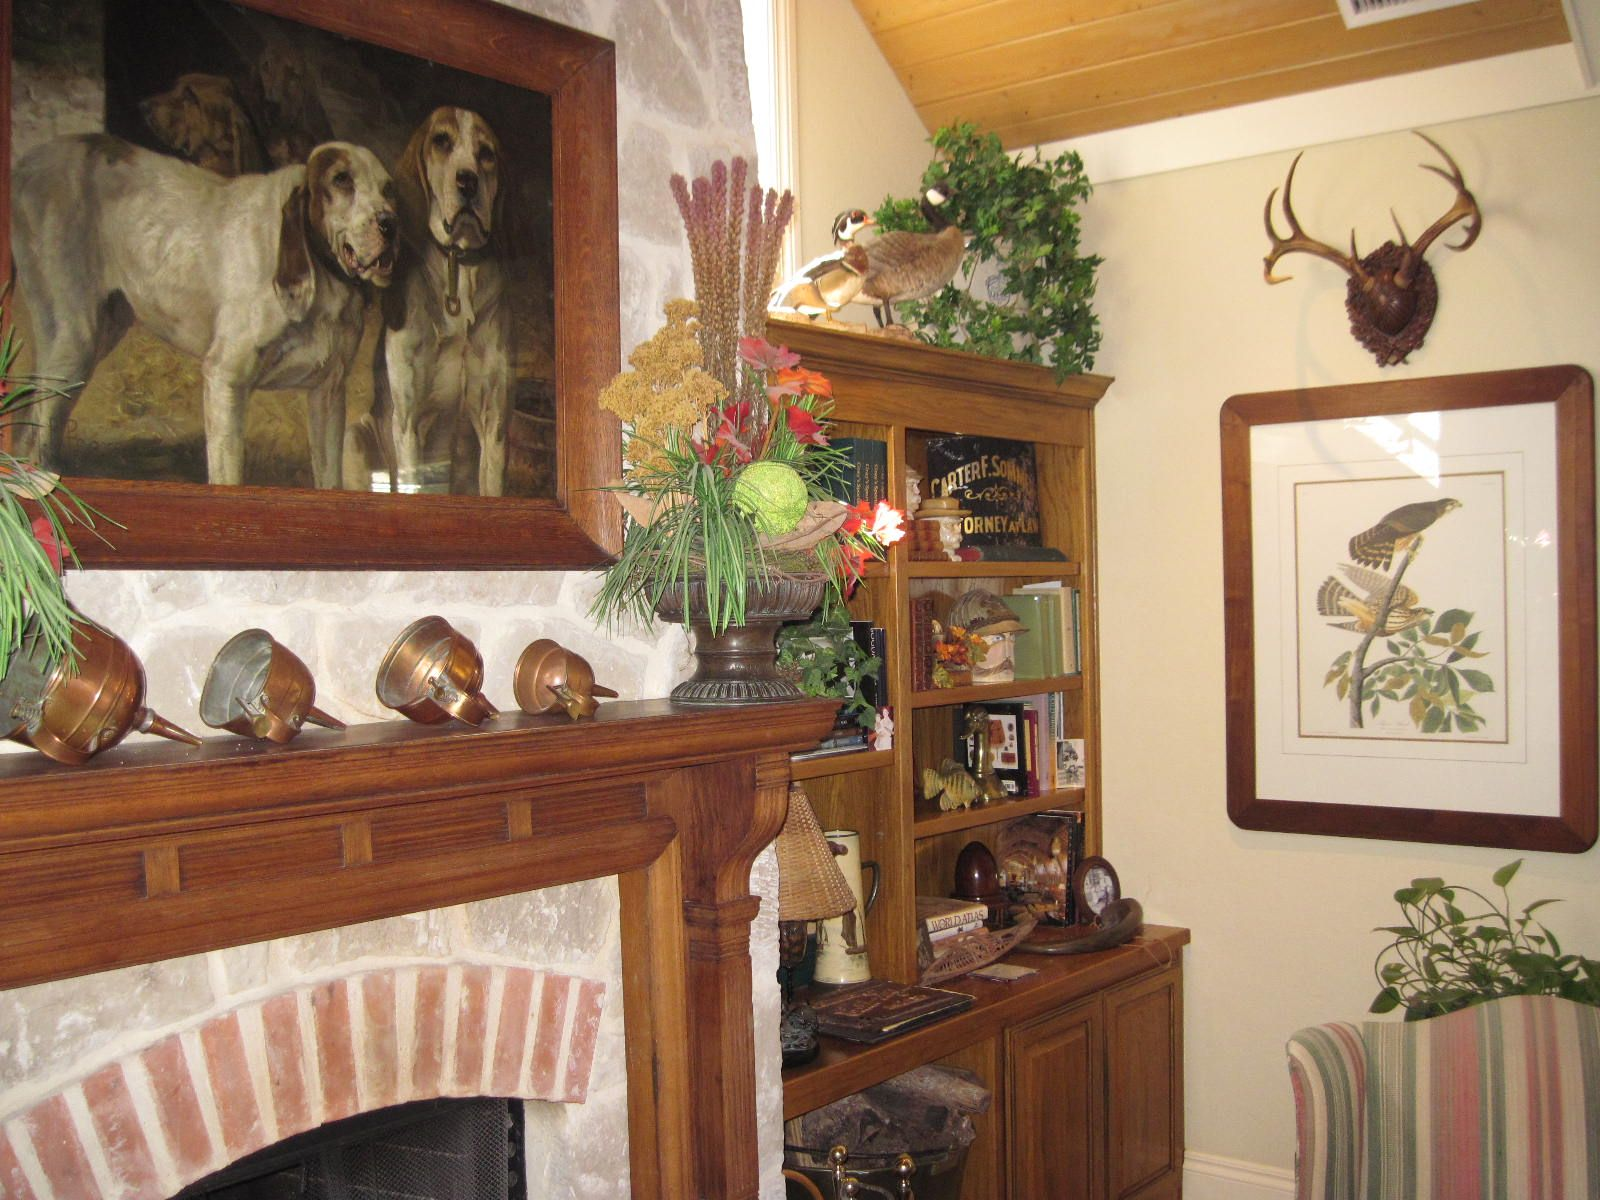 Country decor stores near me sporting